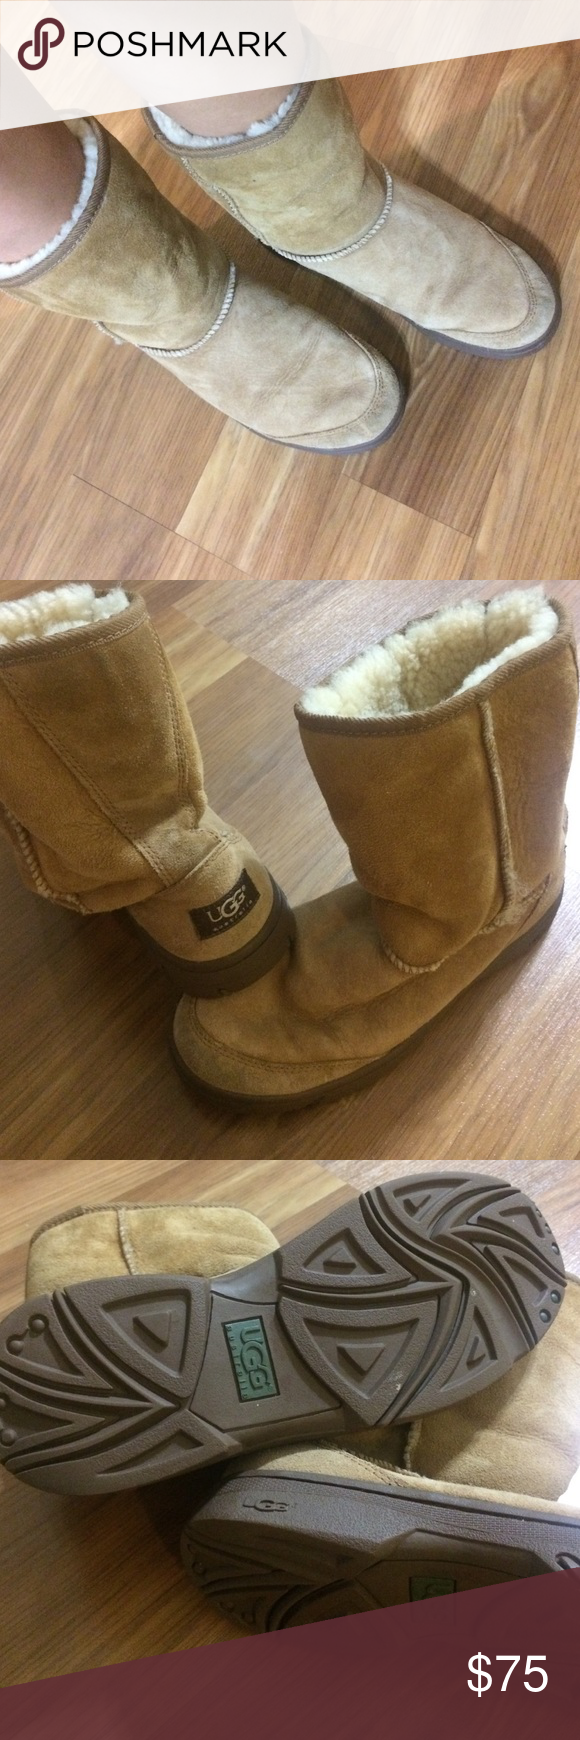 UGG boots Nice boots,size W8 UGG Shoes